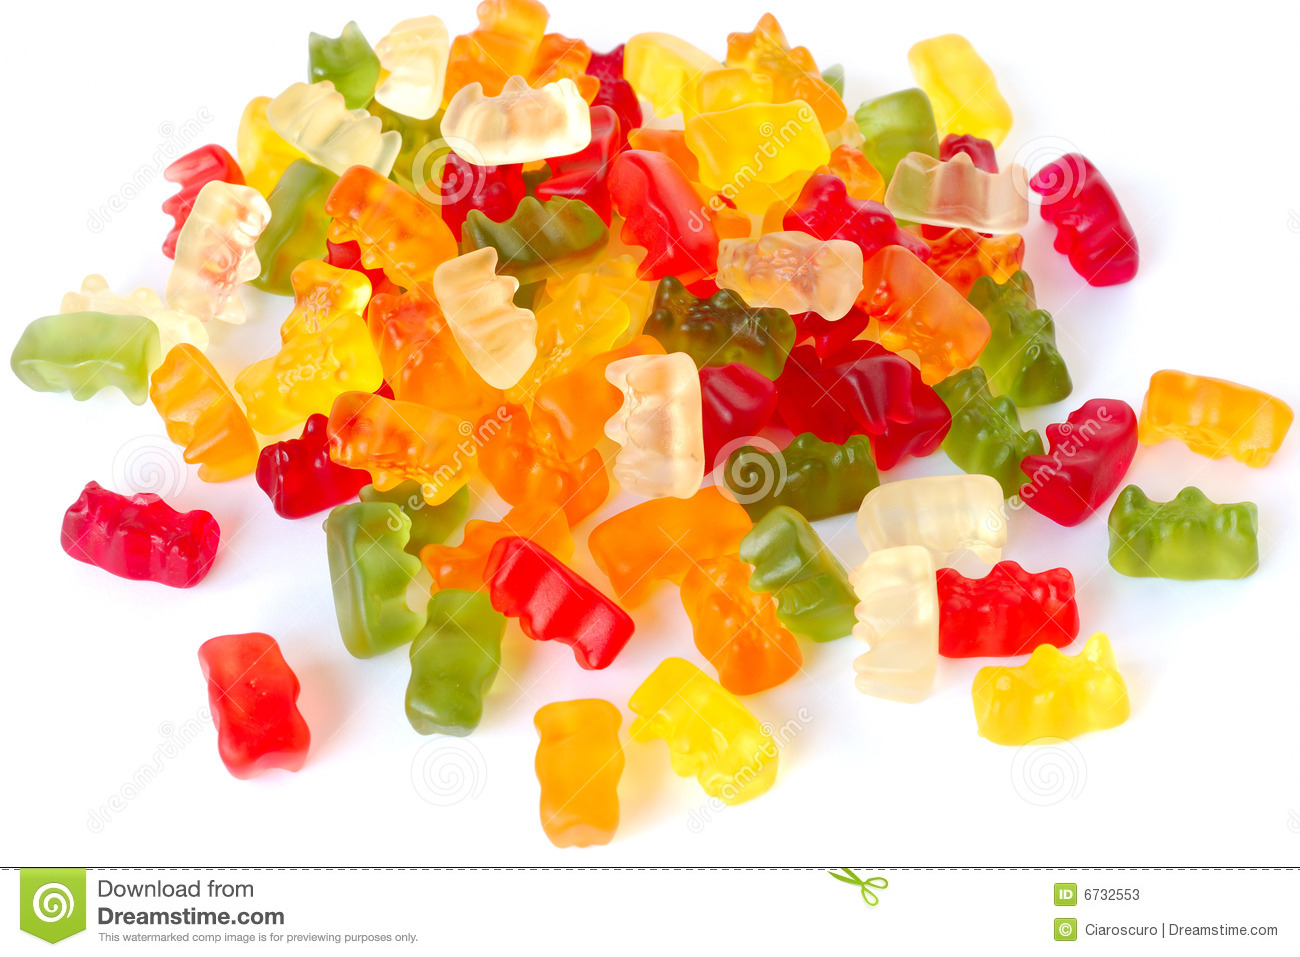 Varicoloured fruit jellies.It is isolated on a white background.